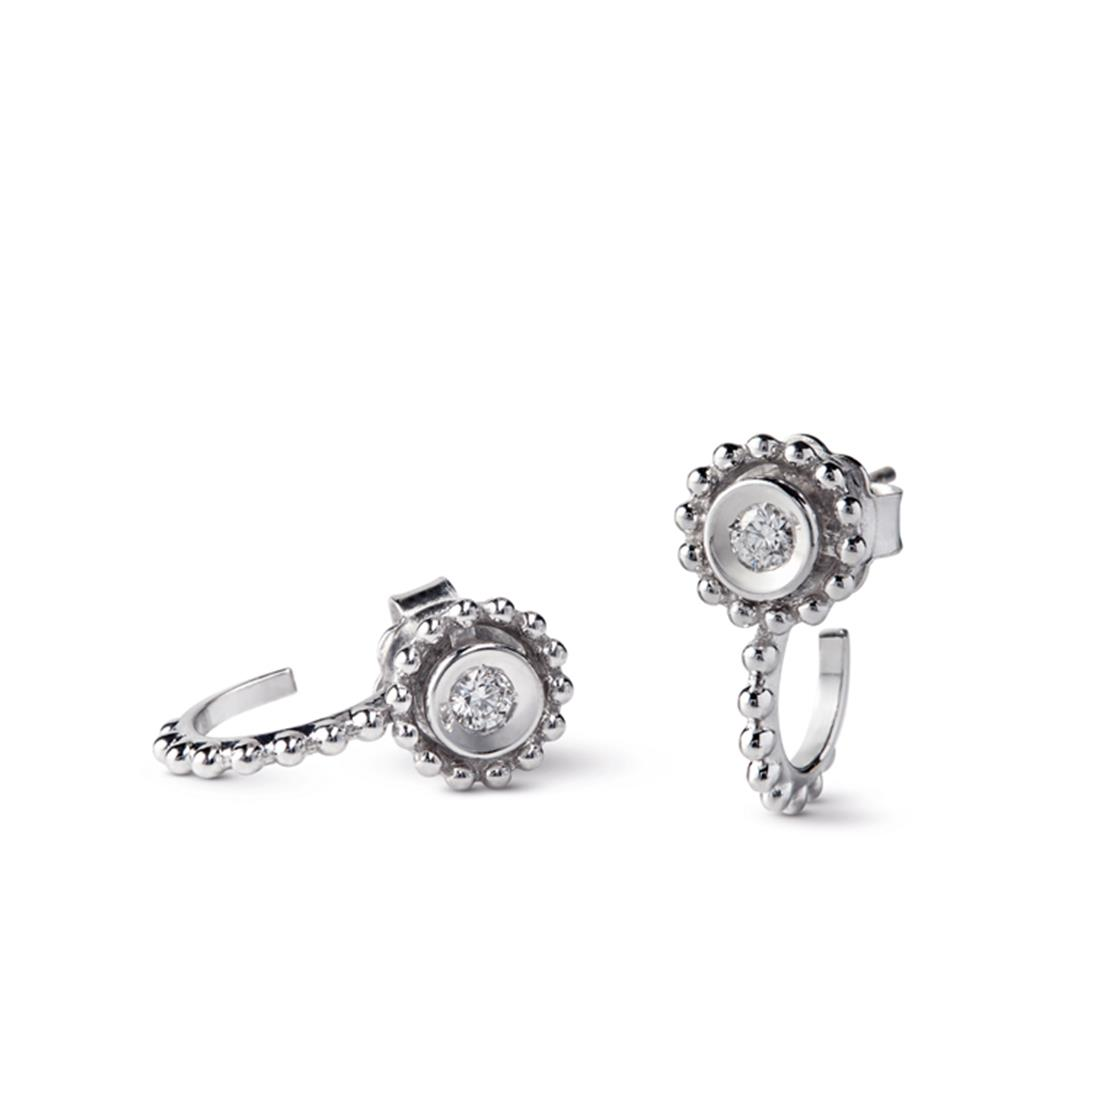 18 kt white gold earrings set with diamonds 0,14 ct